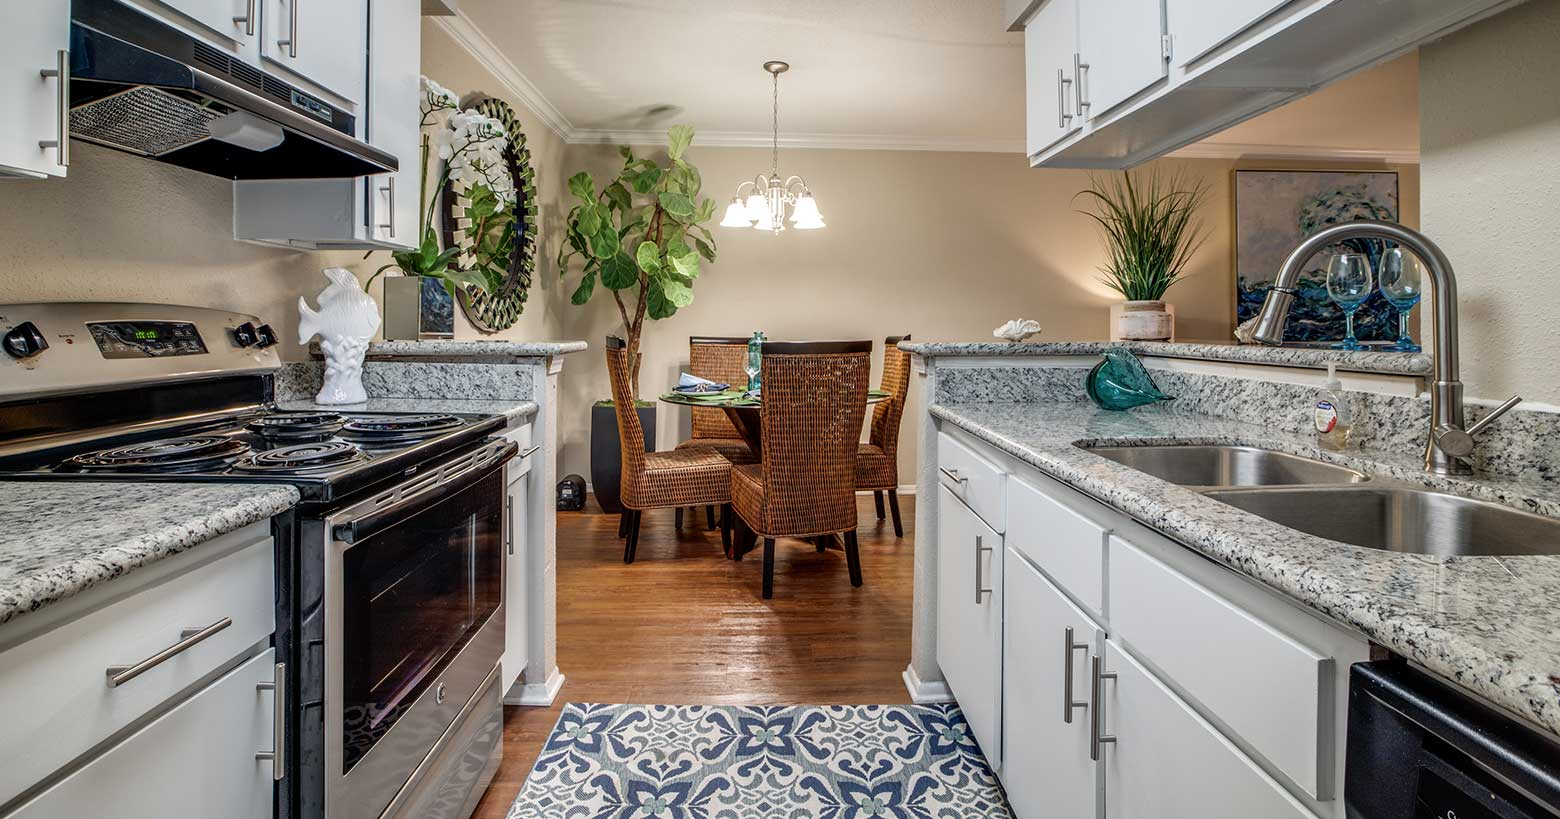 Affordable seabrook apartments for rent